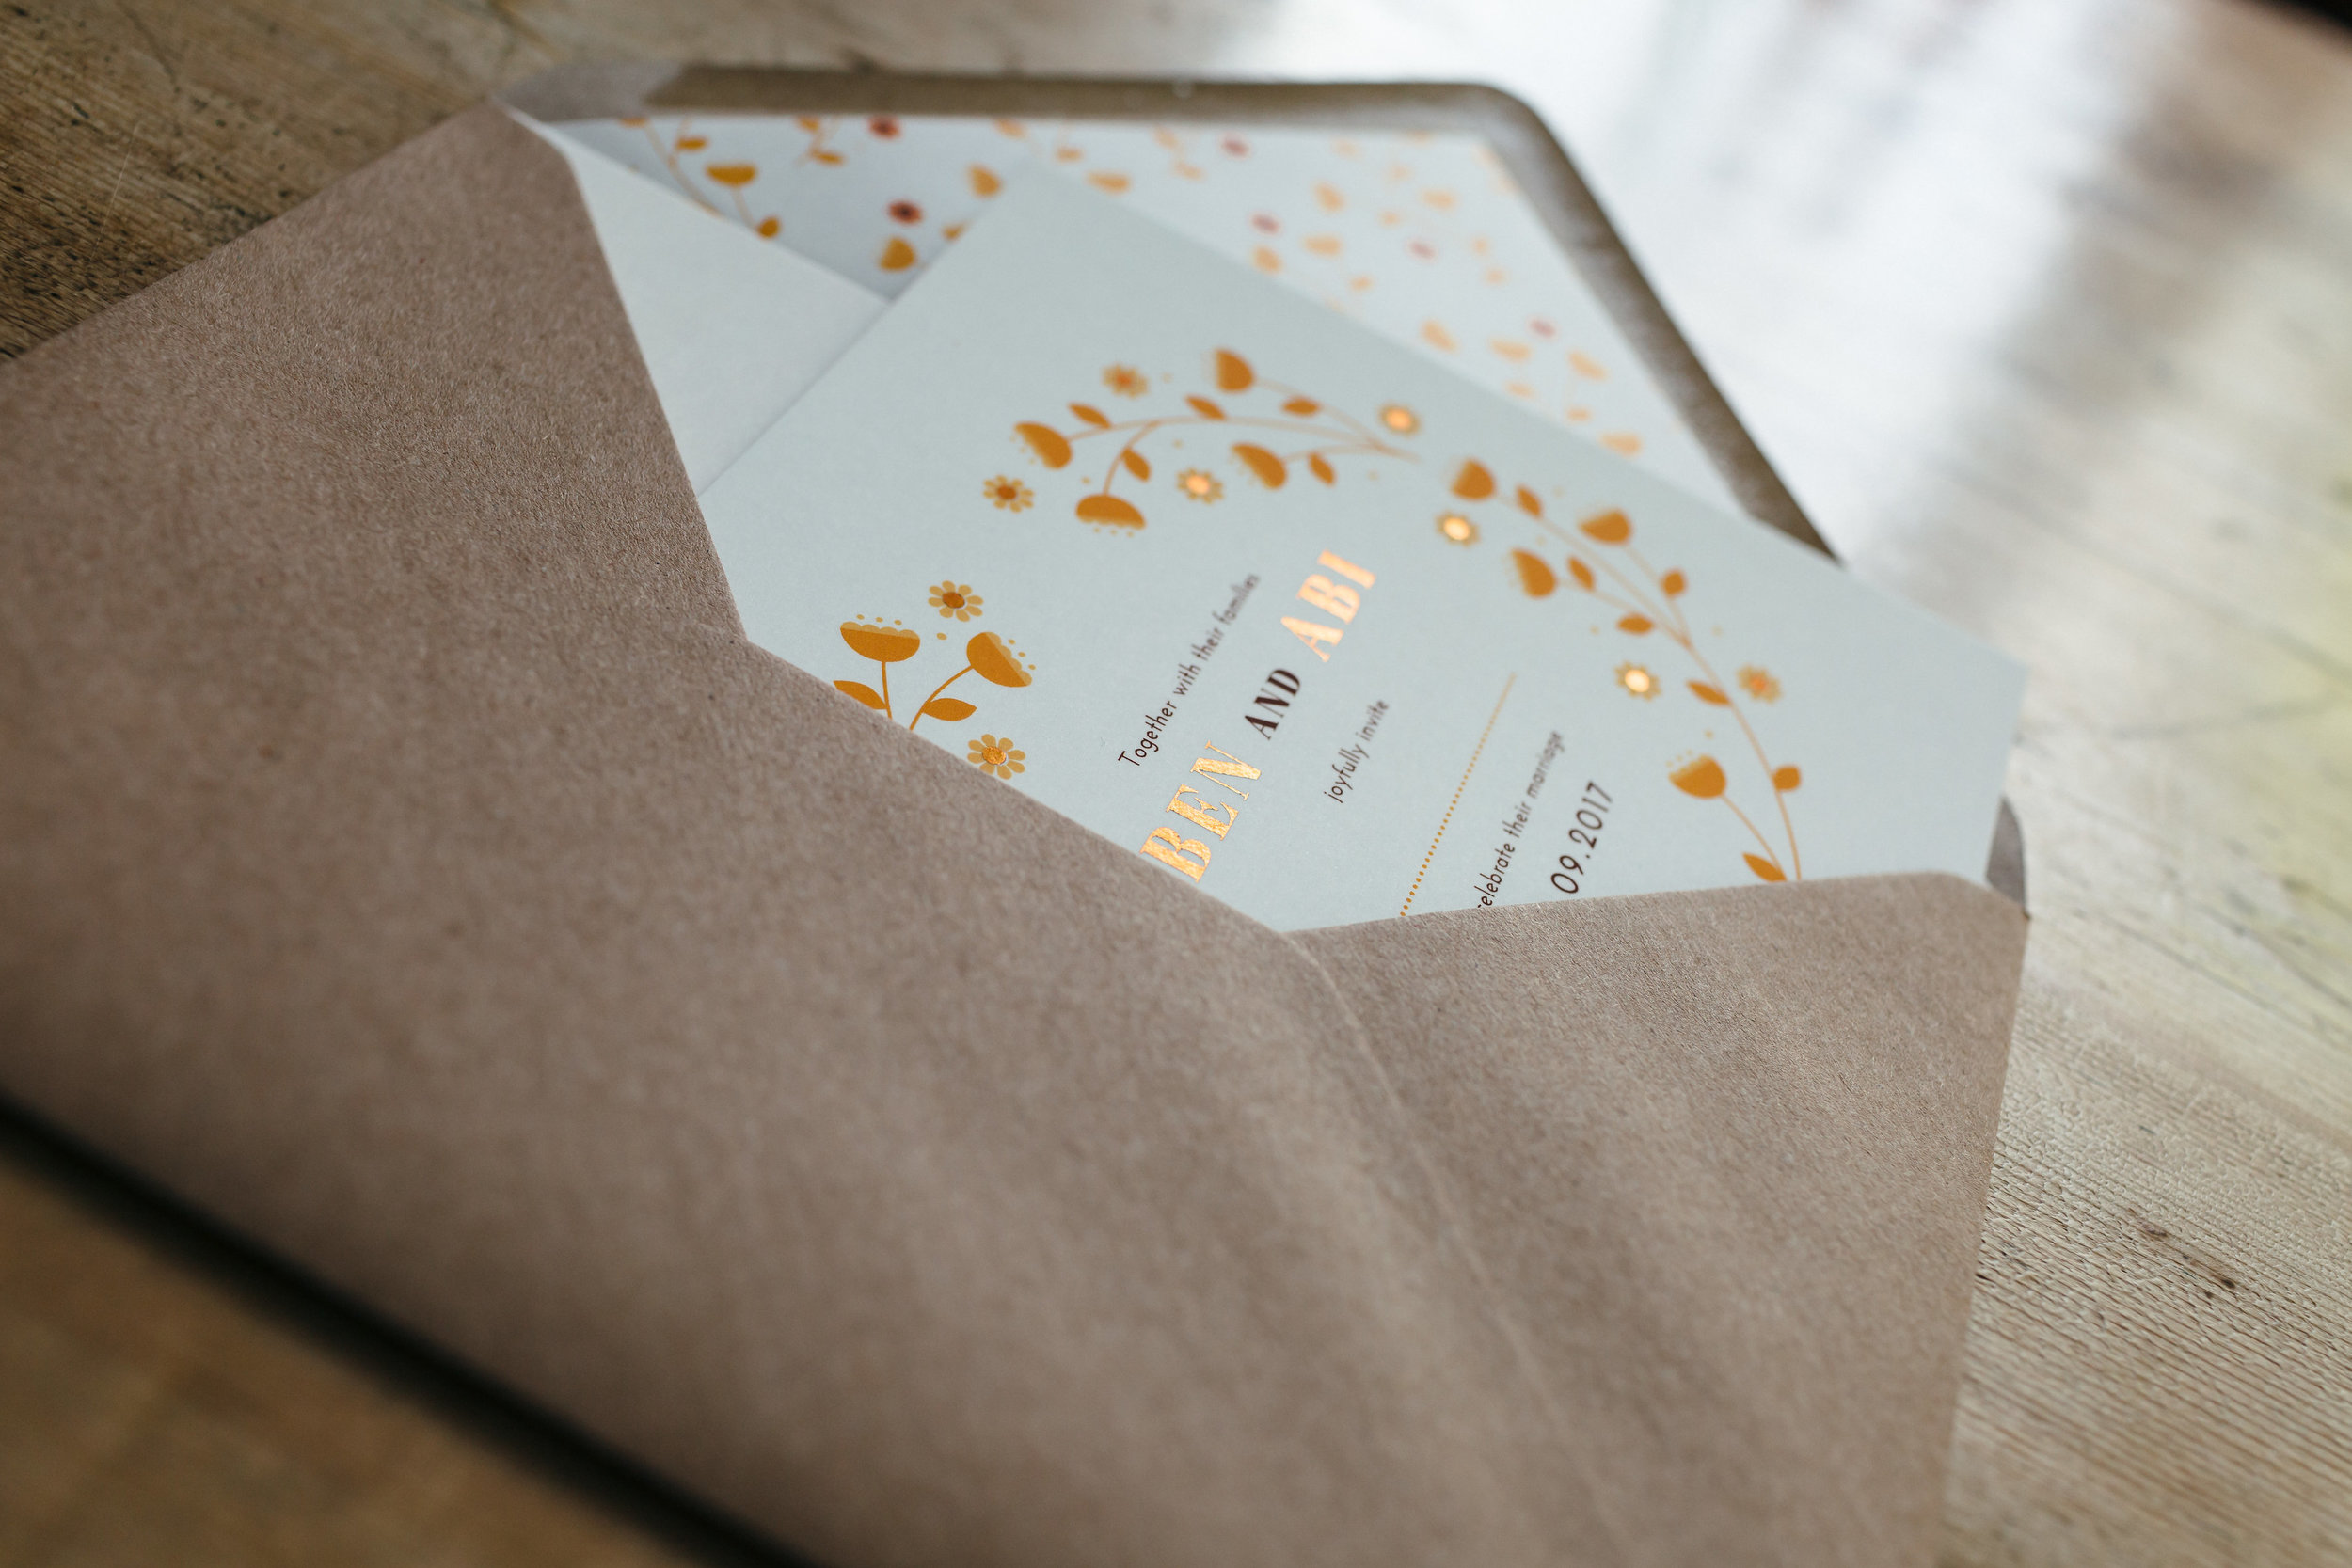 As an extra special touch we included envelope liners featuring Ben's retro floral pattern.